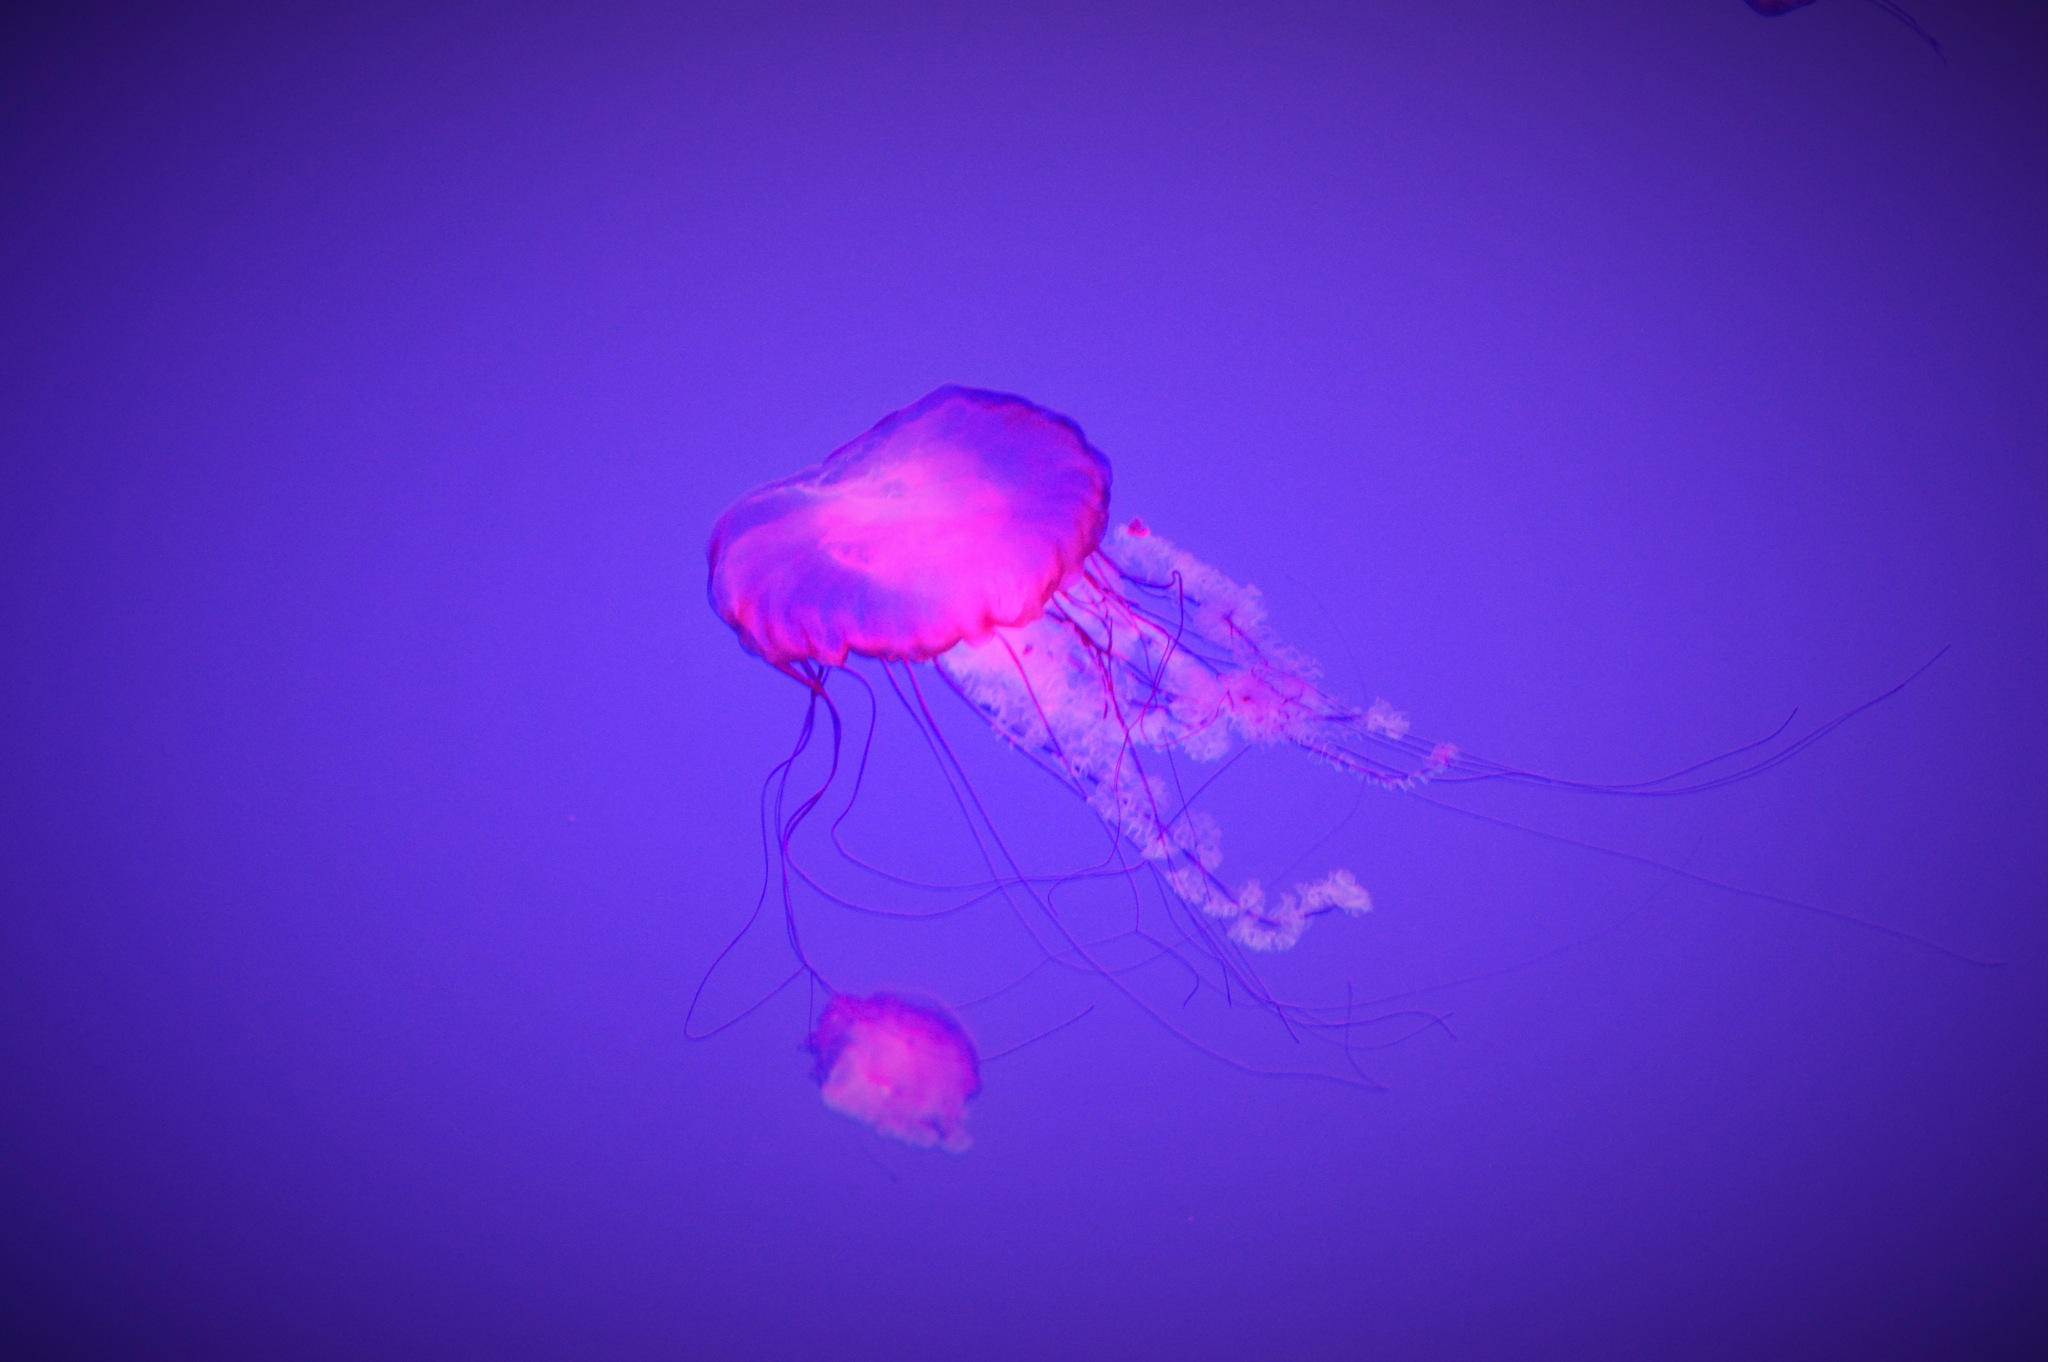 Jelly Fish by Dave Schickler